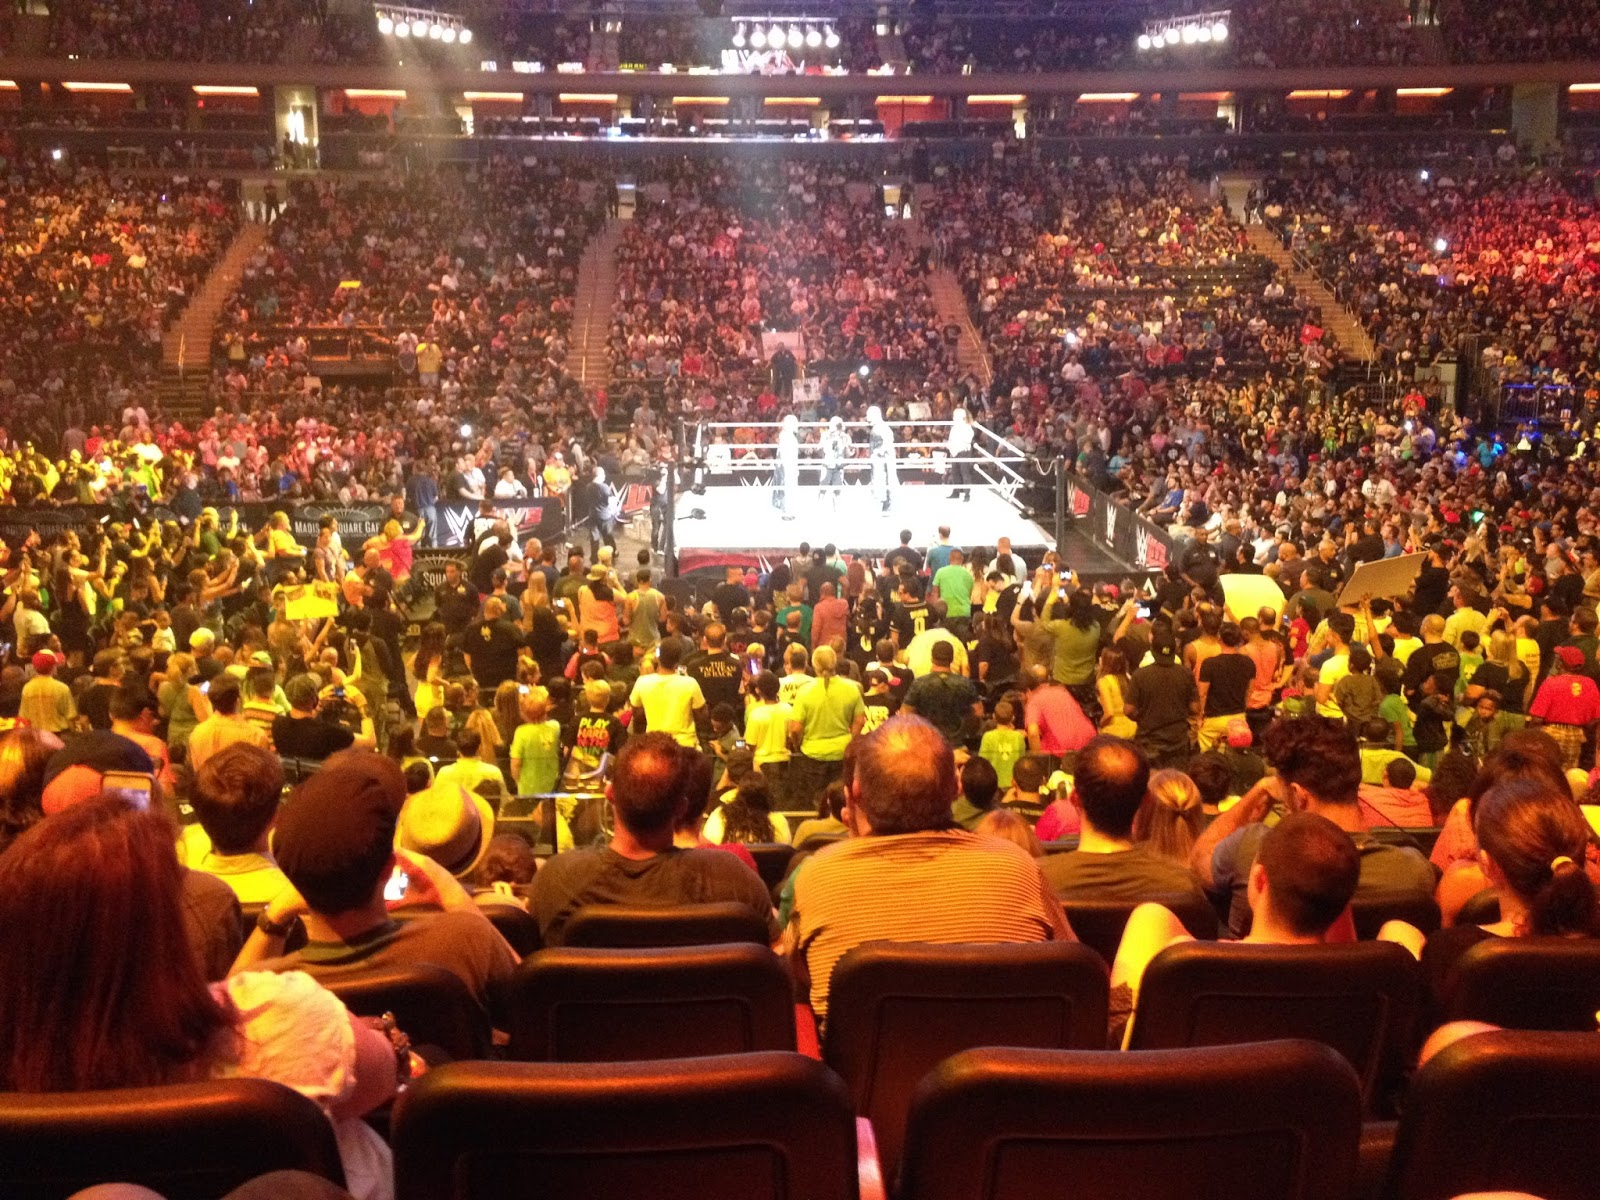 Media Hygiene: WWE SummerSlam at Madison Square Garden!